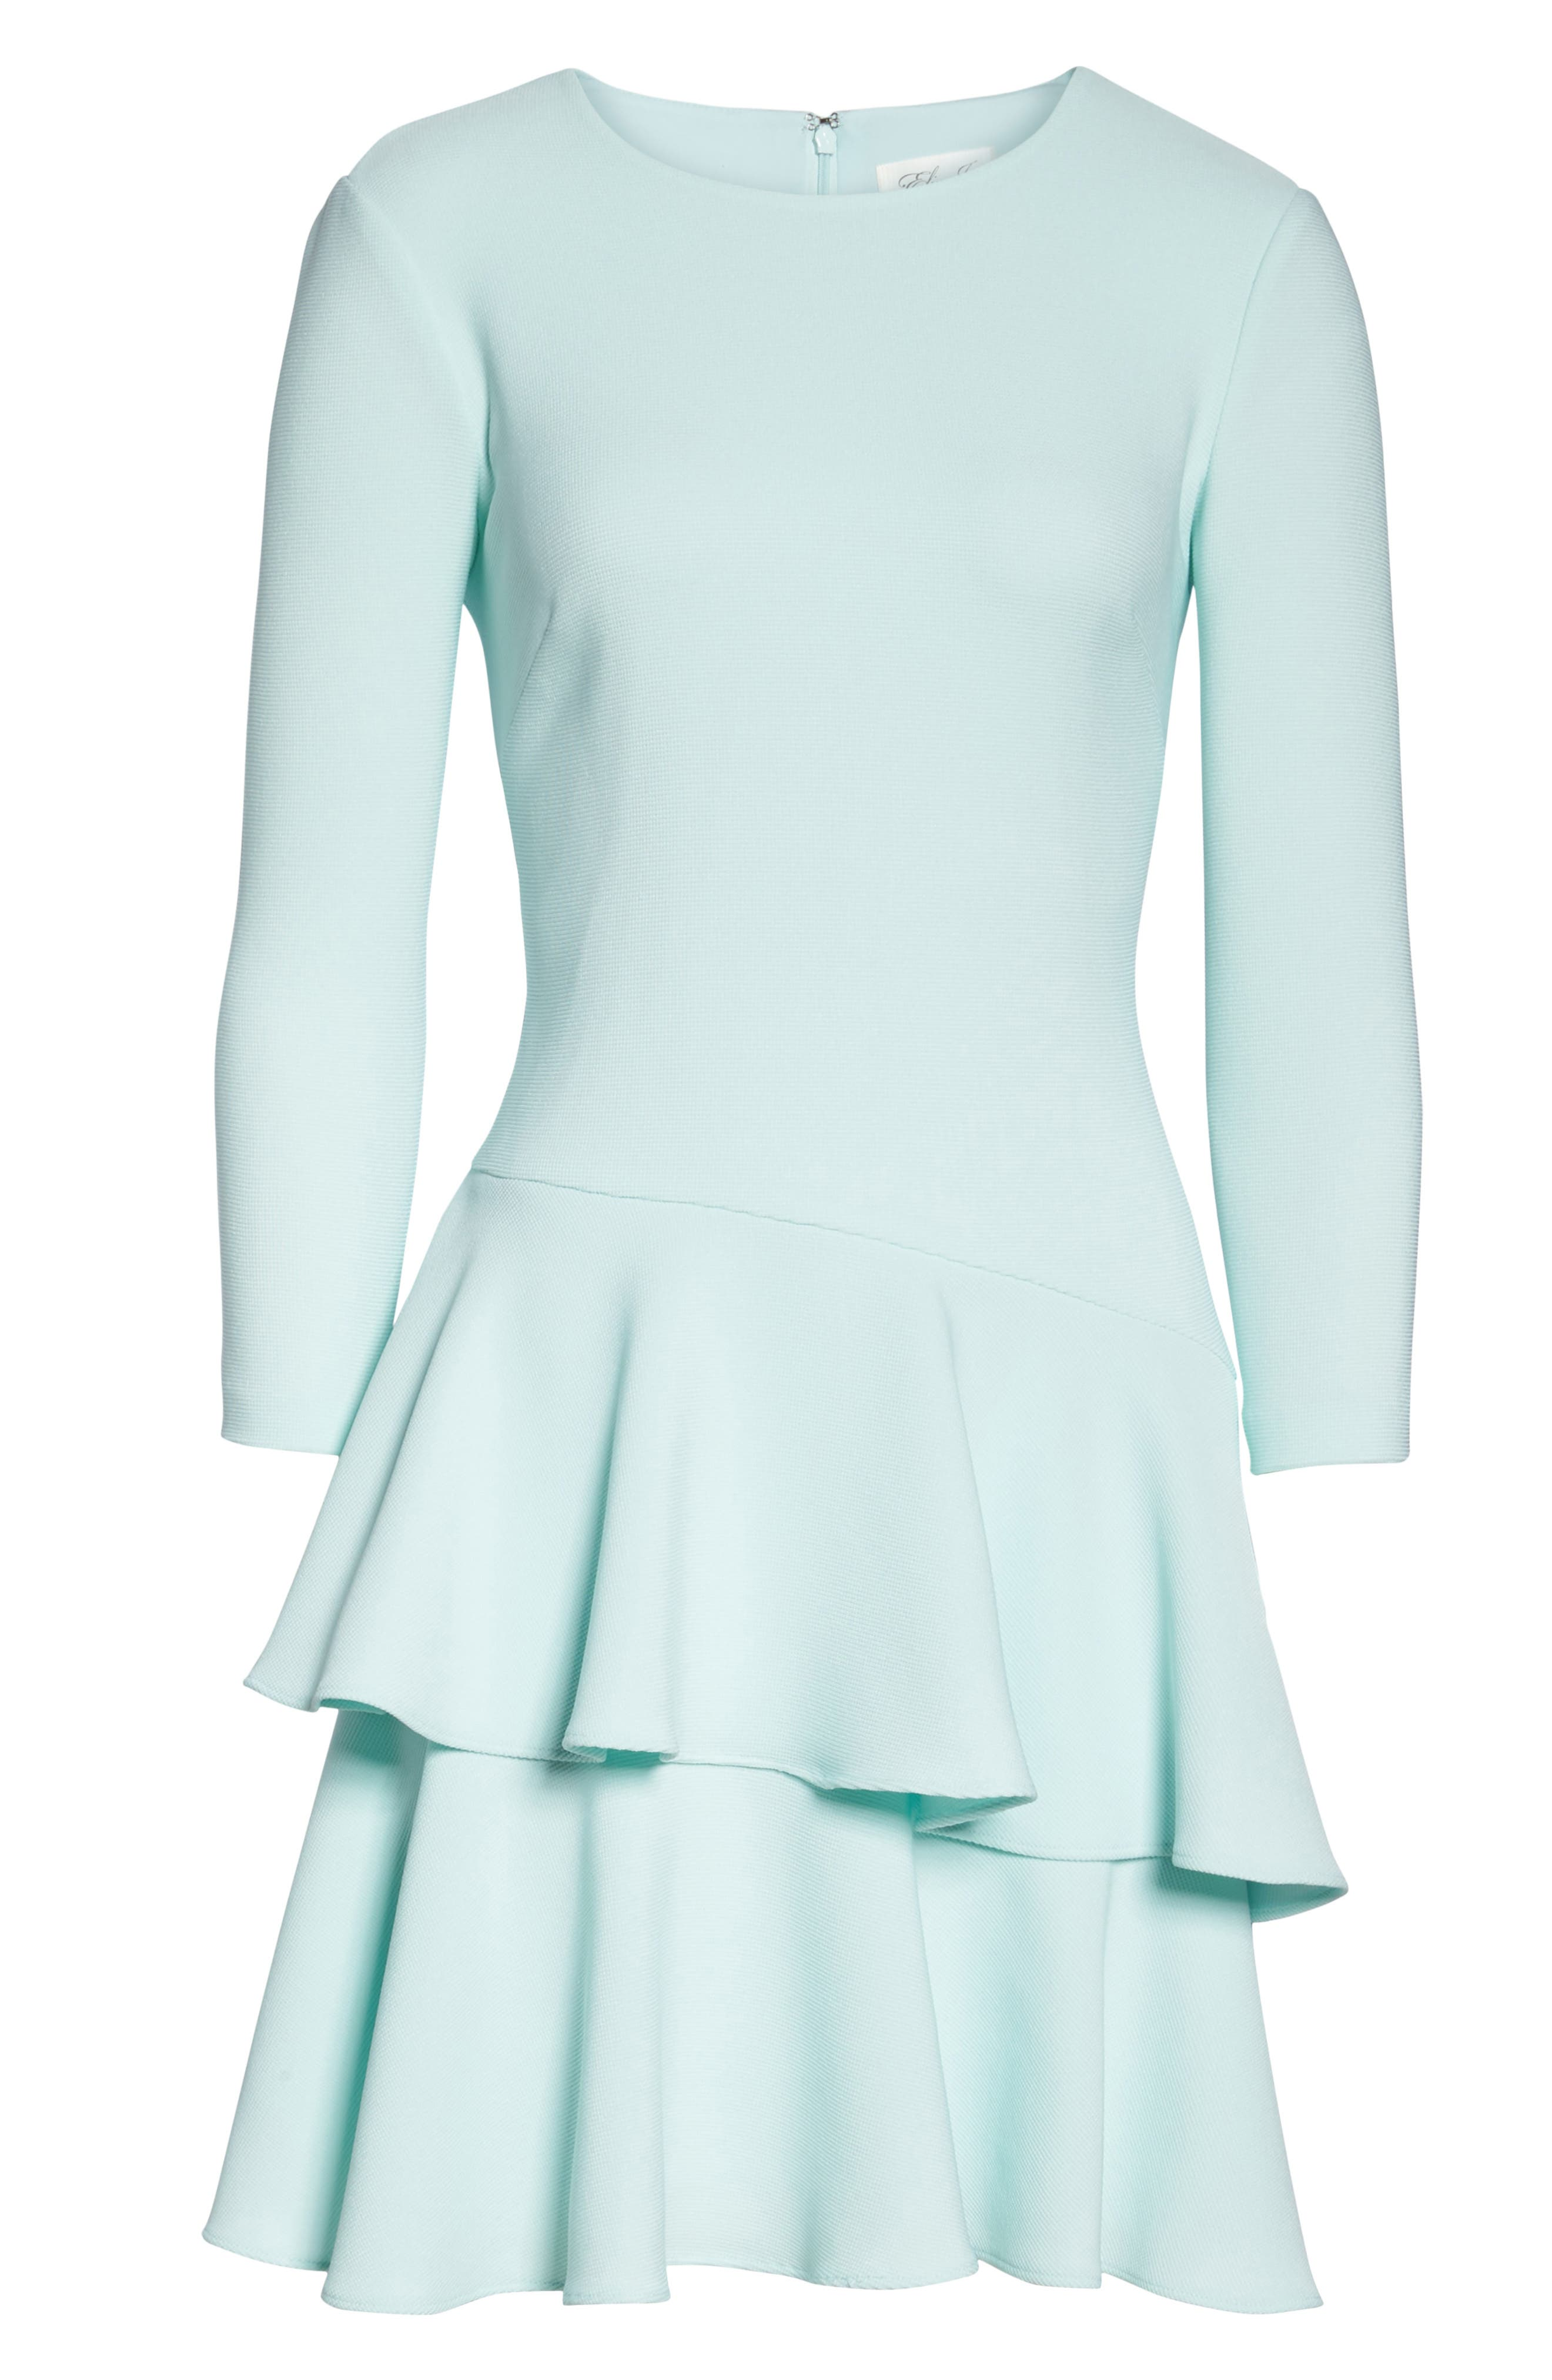 Tiered Ruffle Dress,                             Alternate thumbnail 6, color,                             439